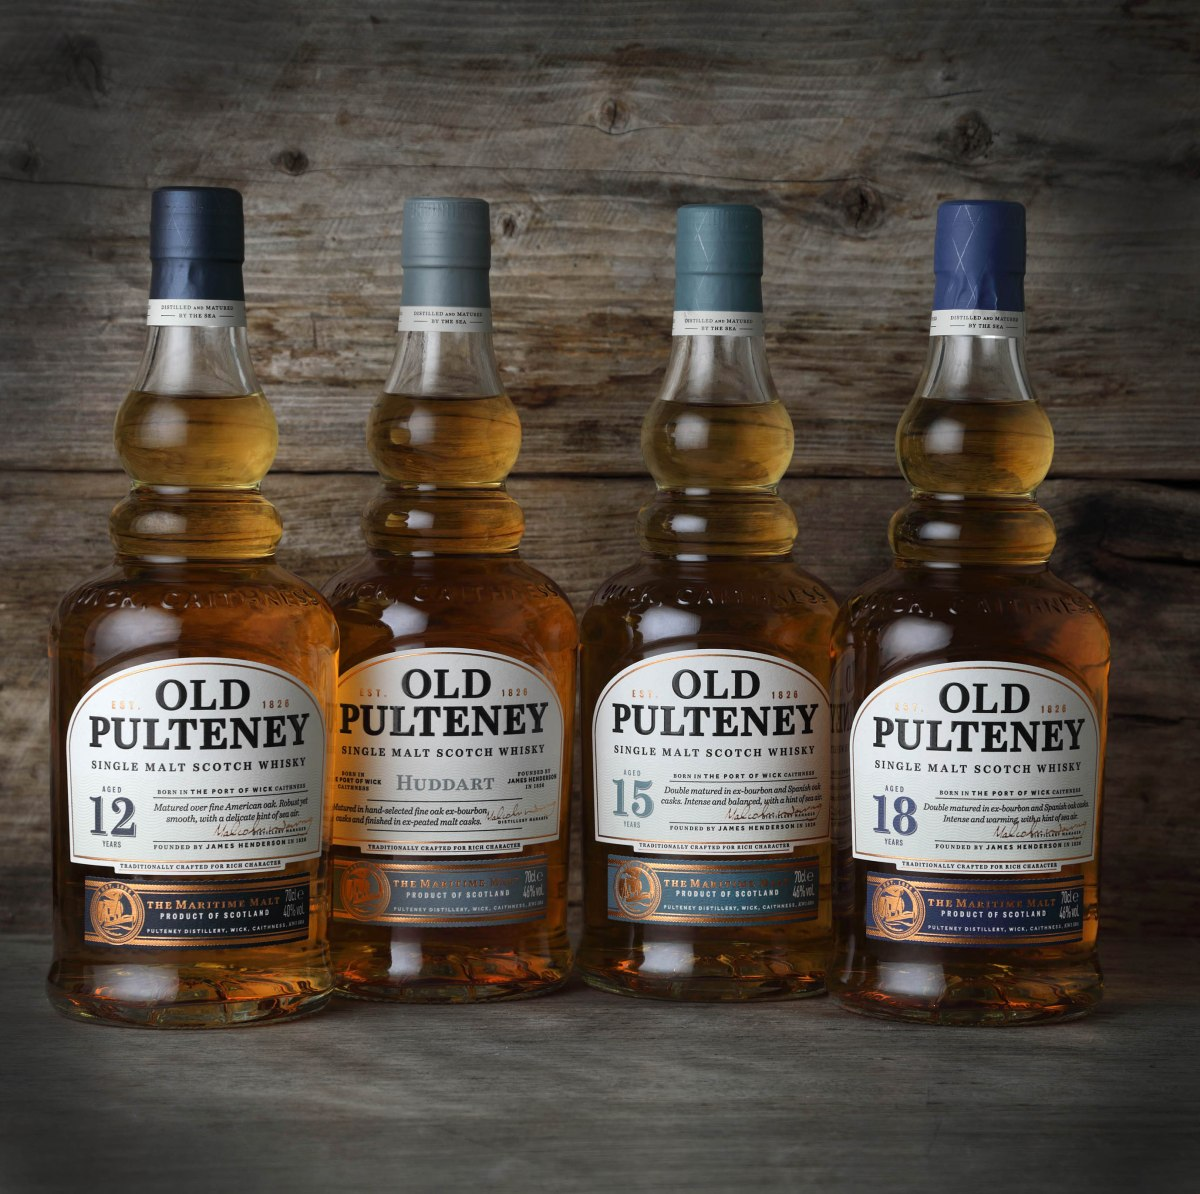 Old Pulteney unveils new collection to signal brand evolution